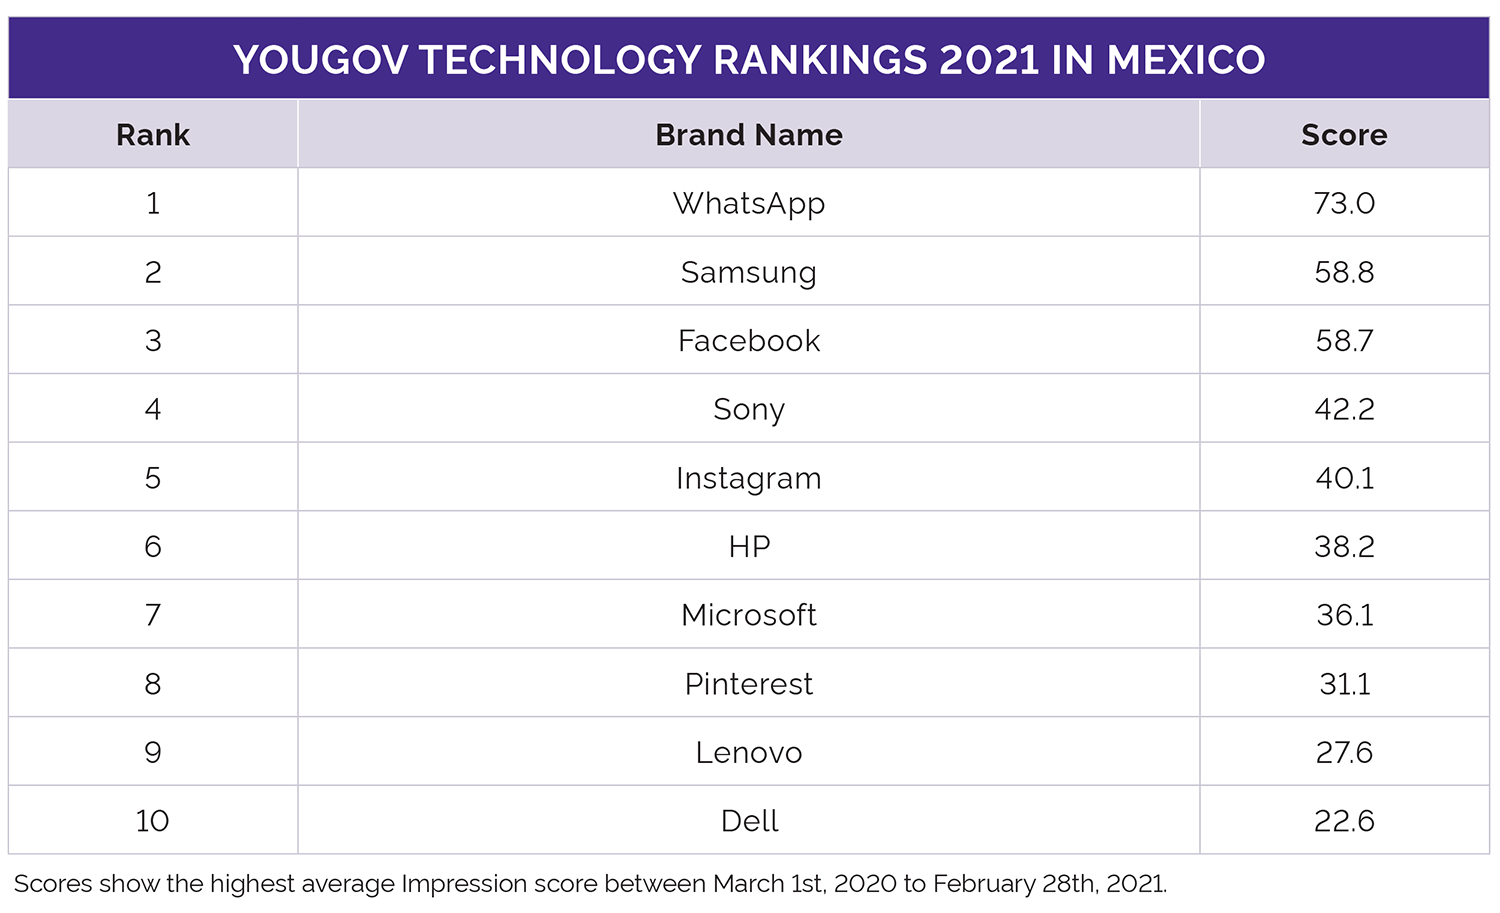 YouGov Technology Rankings 2021 Mexico